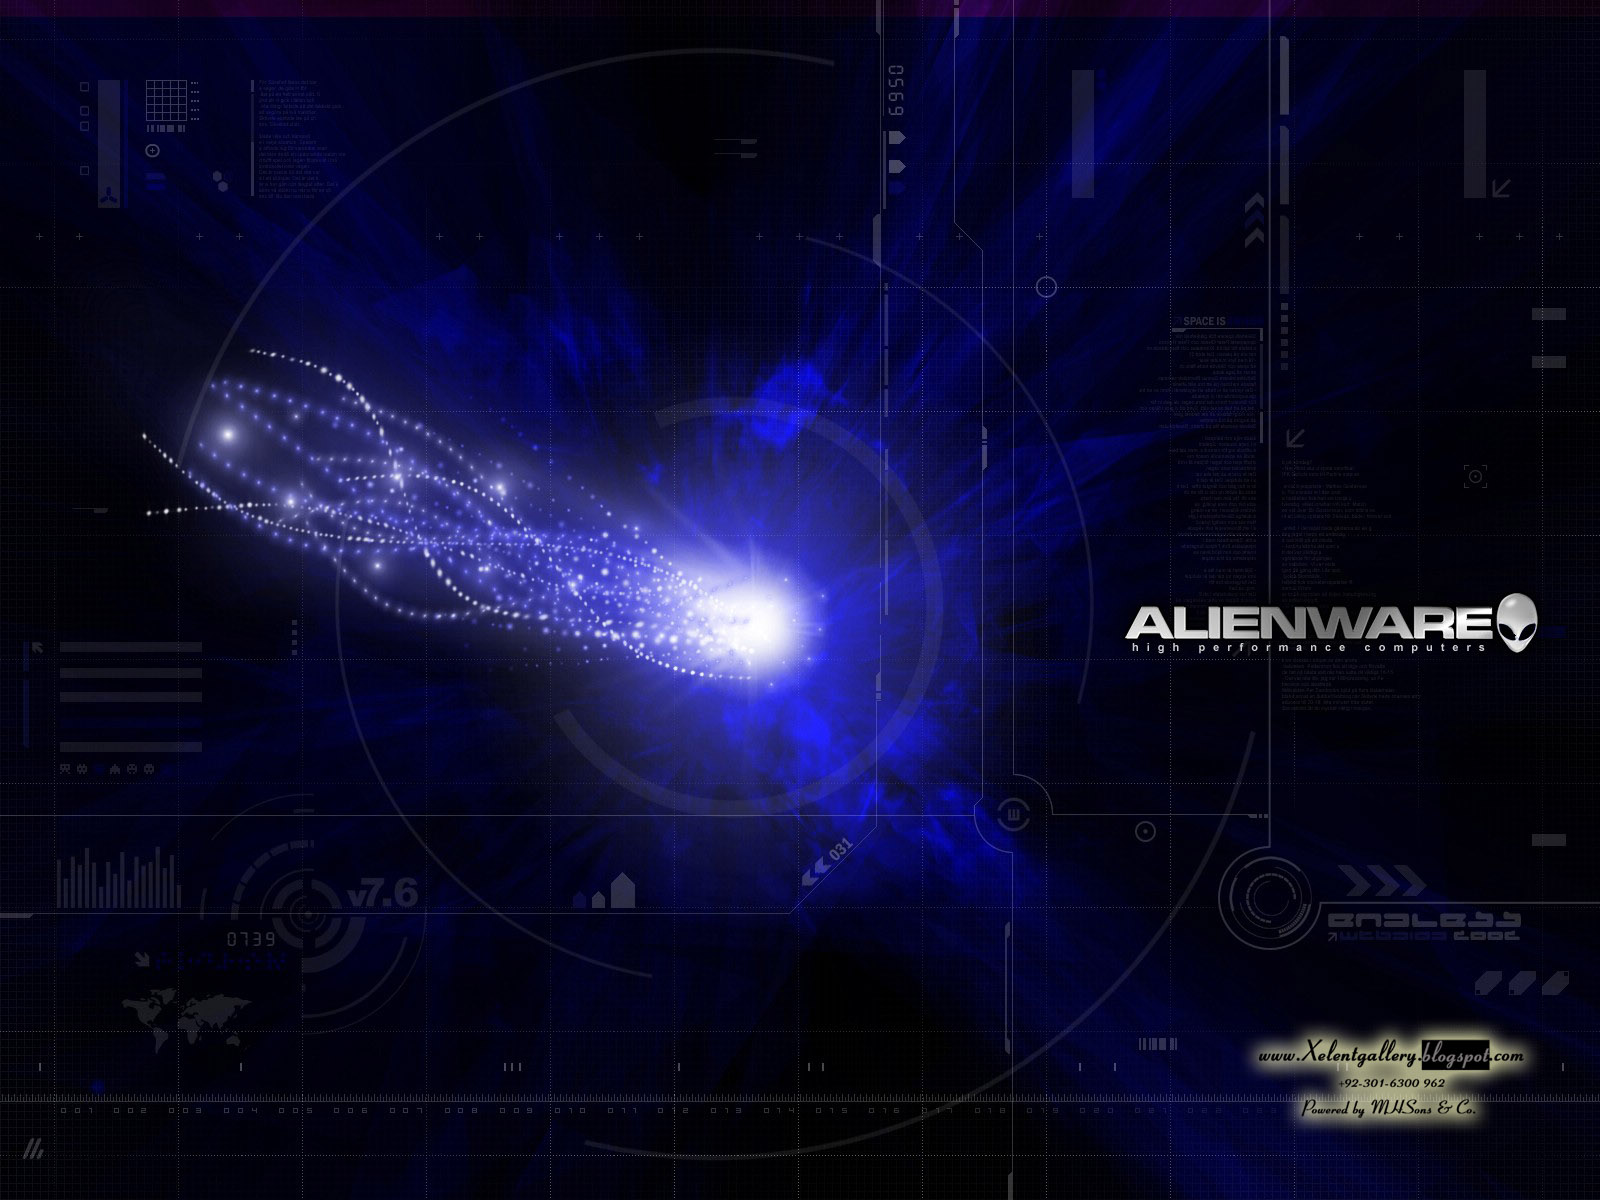 Alienware Wallpapers 1080p HD Walls Find Wallpapers 1600x1200